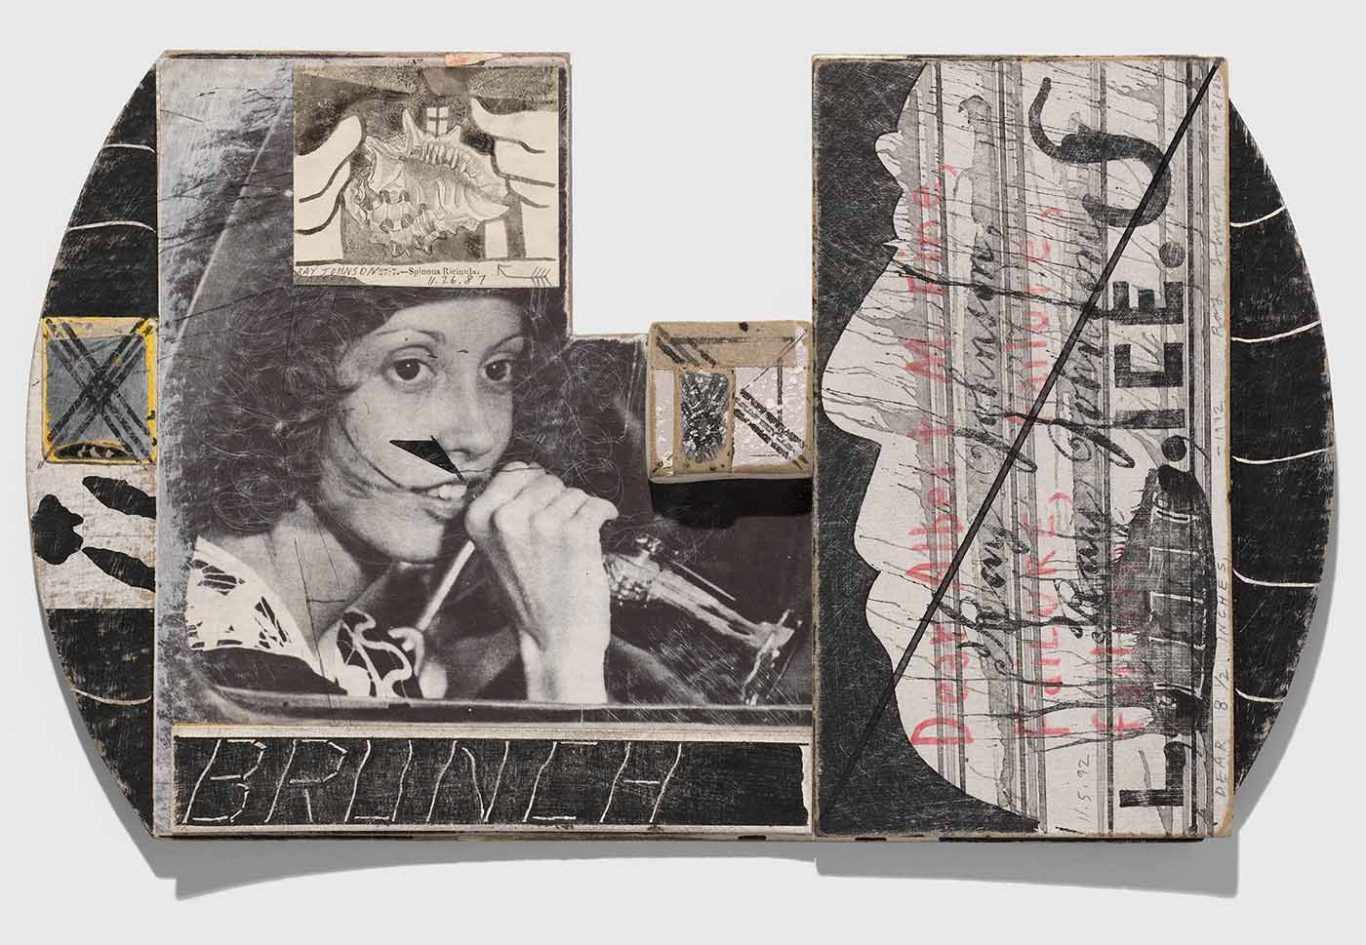 Village Voice article about mail artist Ray Johnson